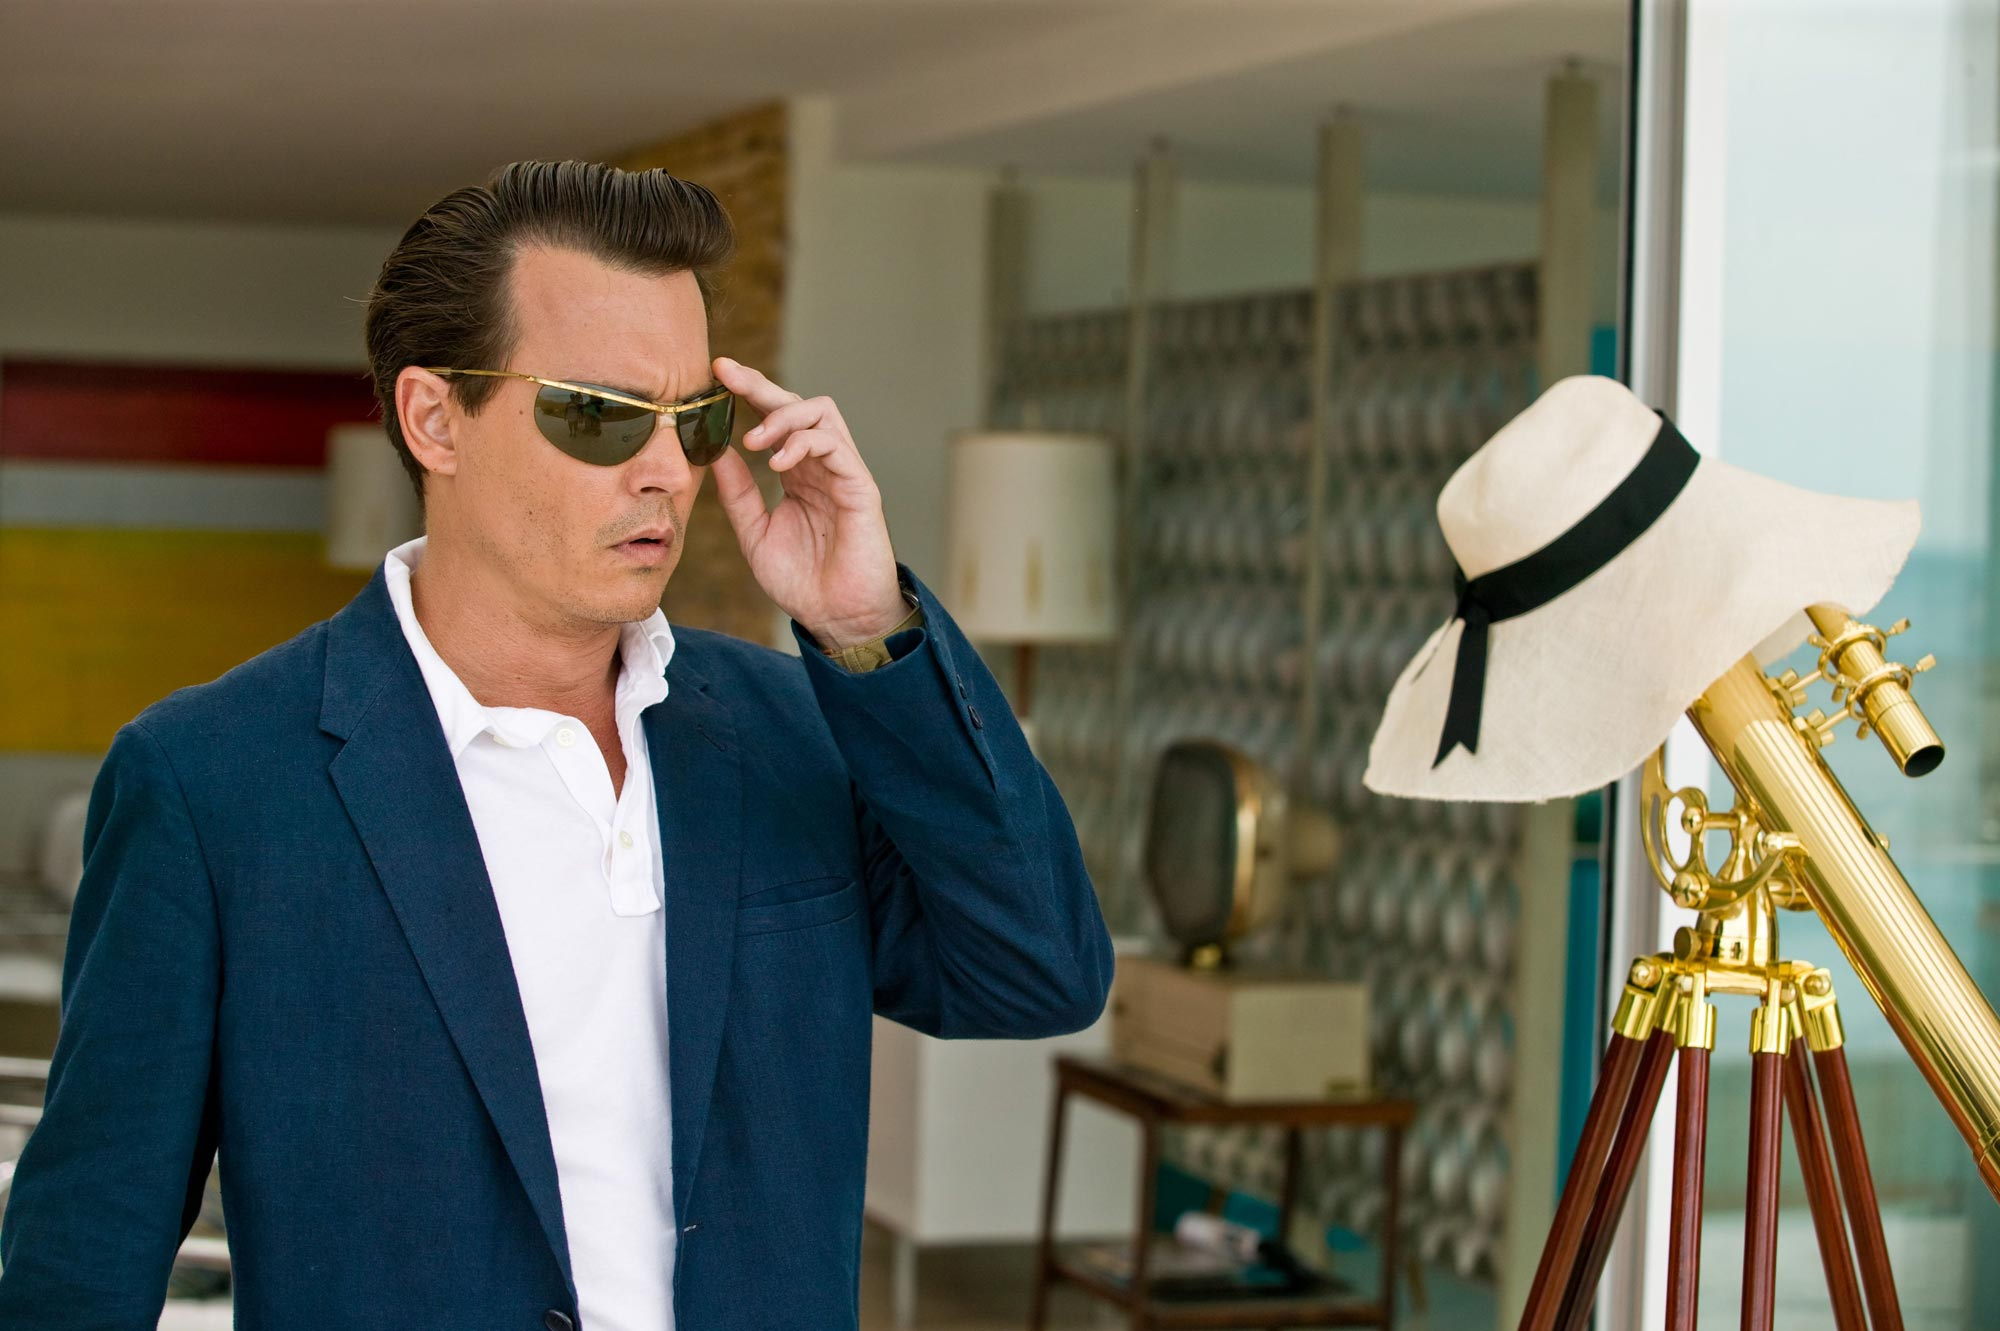 Rum Diary Photo #23, Johnny Depp